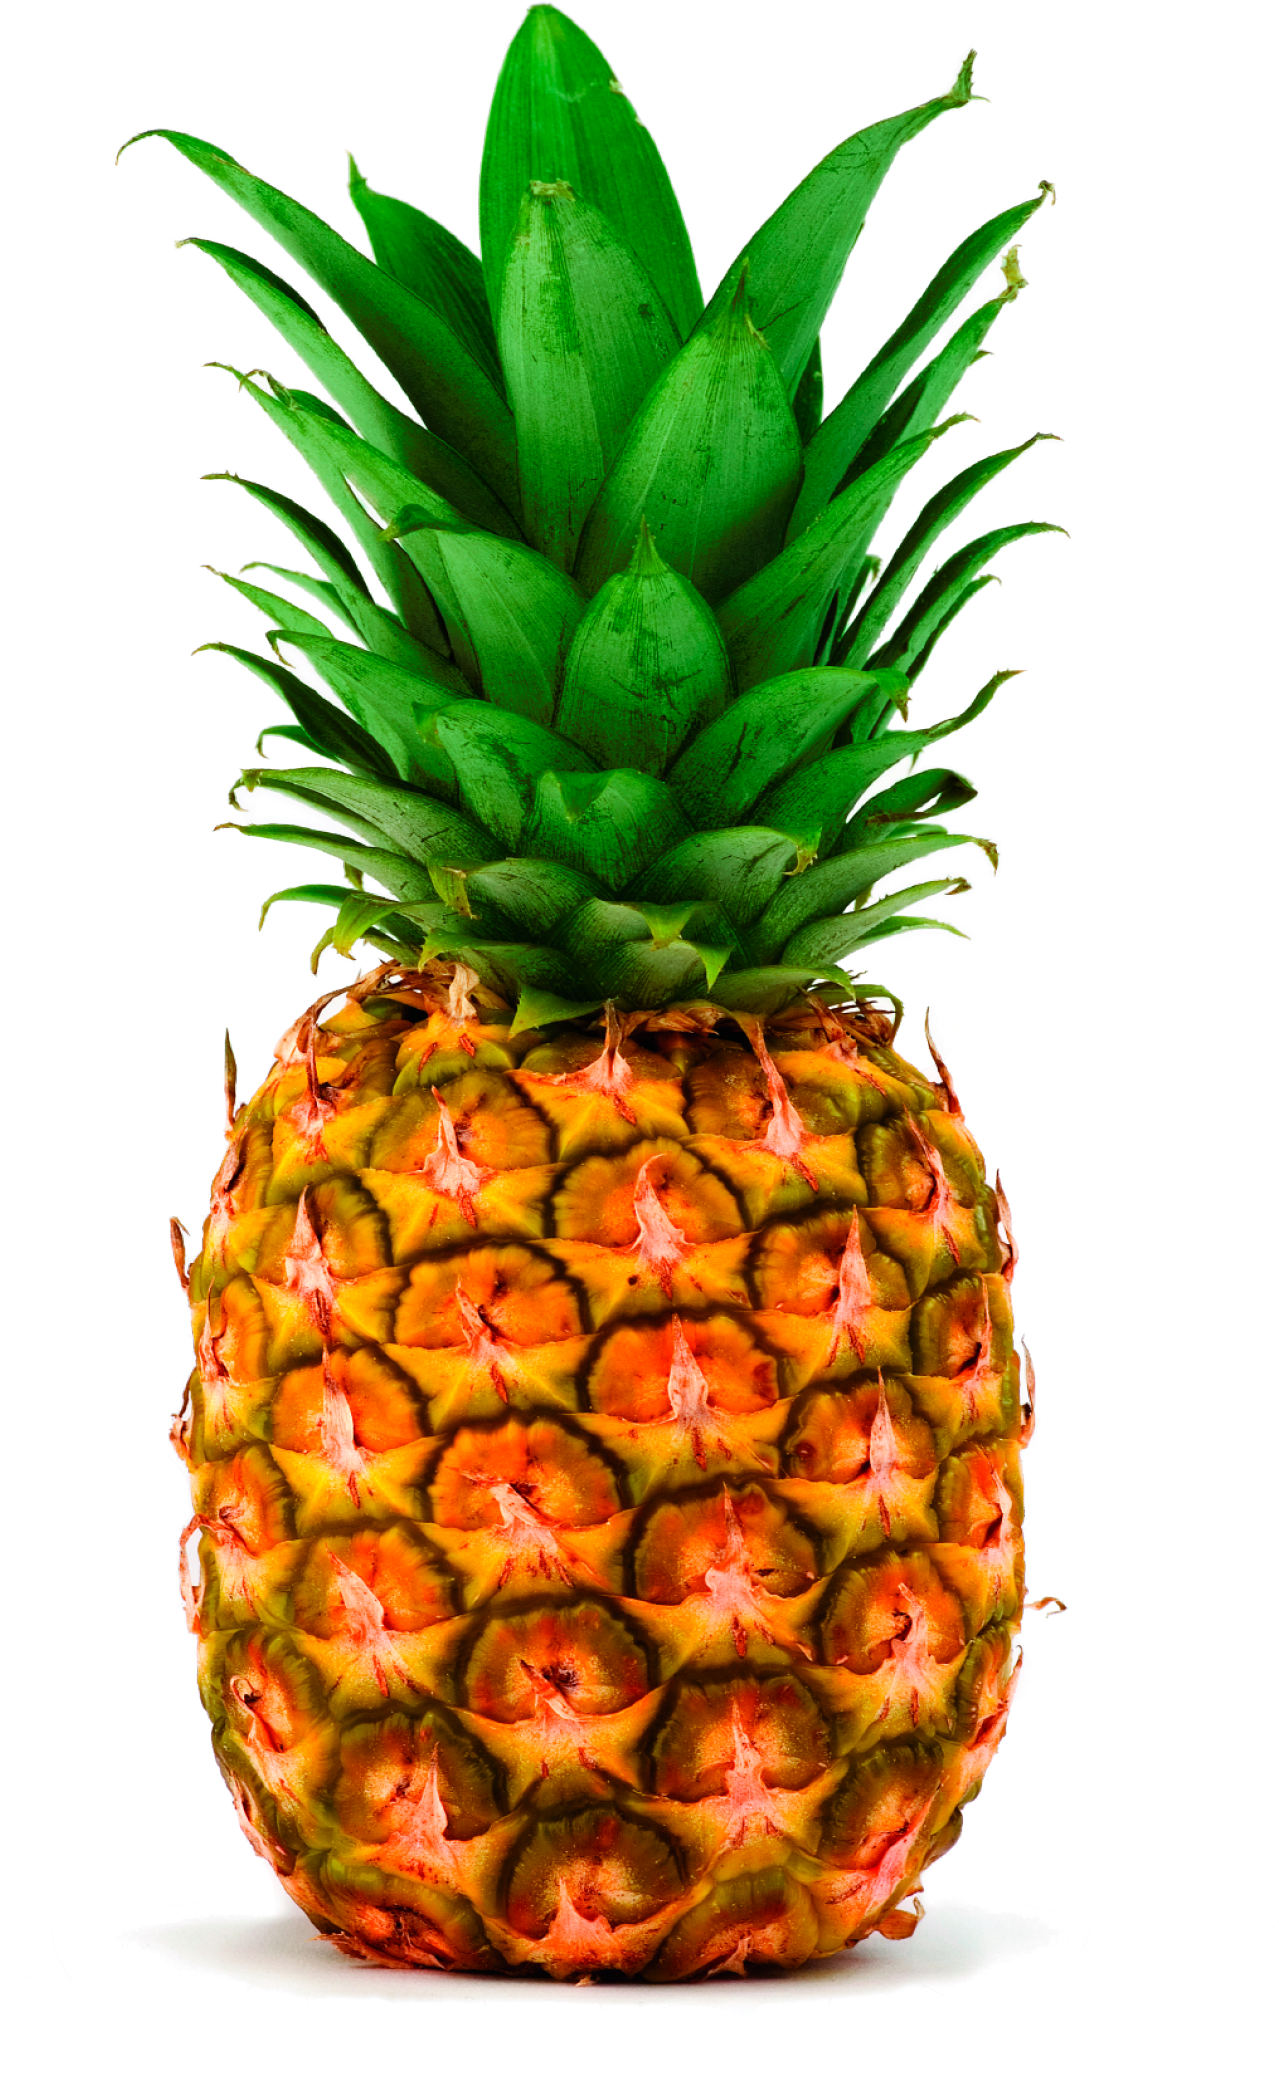 pineapple png transparent - Pineapple Png | #902453 - Vippng